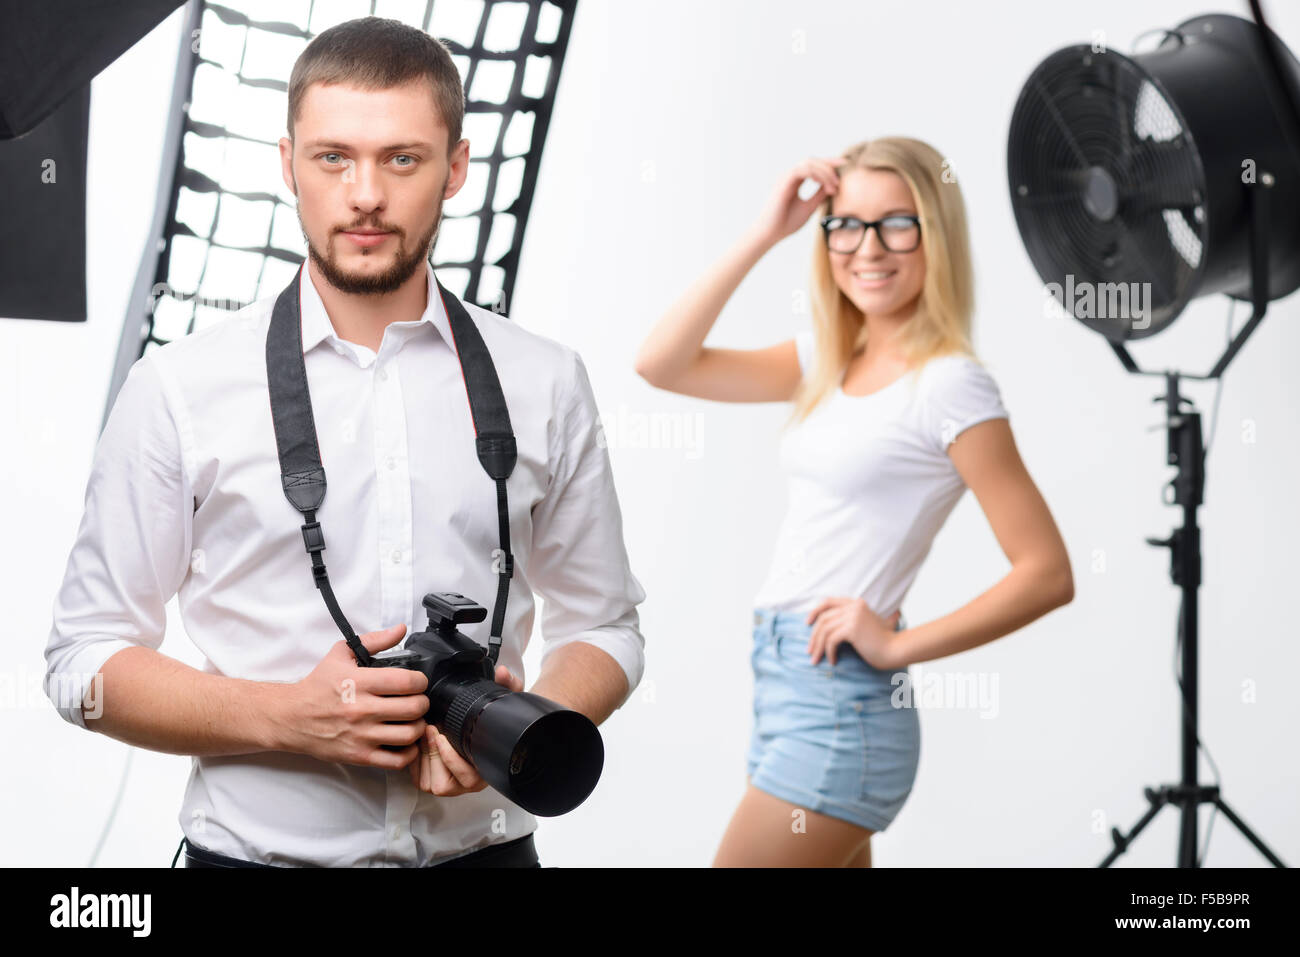 Male young photographer holding a camera - Stock Image